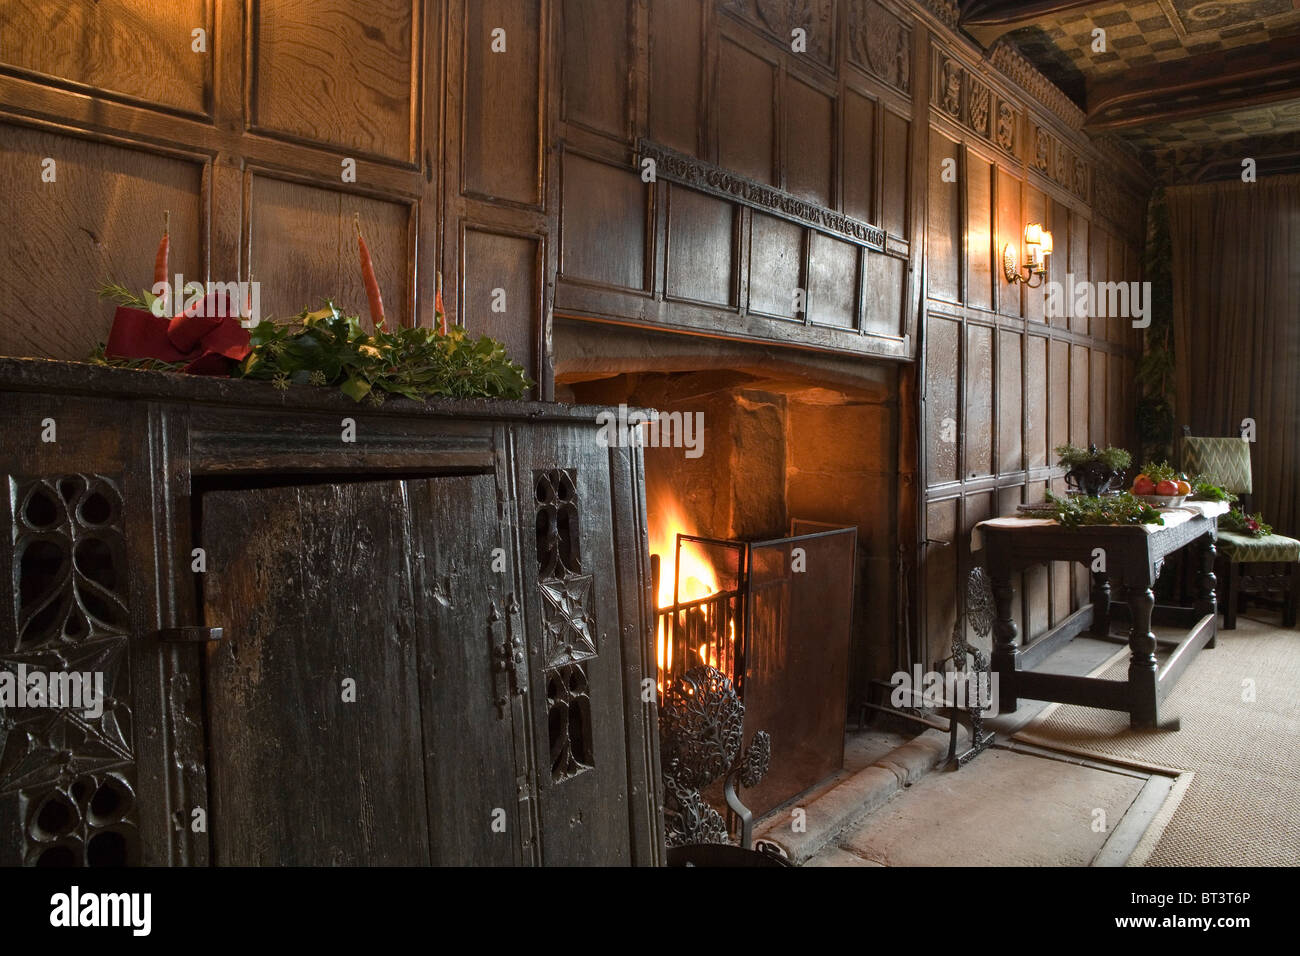 Haddon Hall, Oak Panelled Dining Room At Christmas, Derbyshire, England, UK